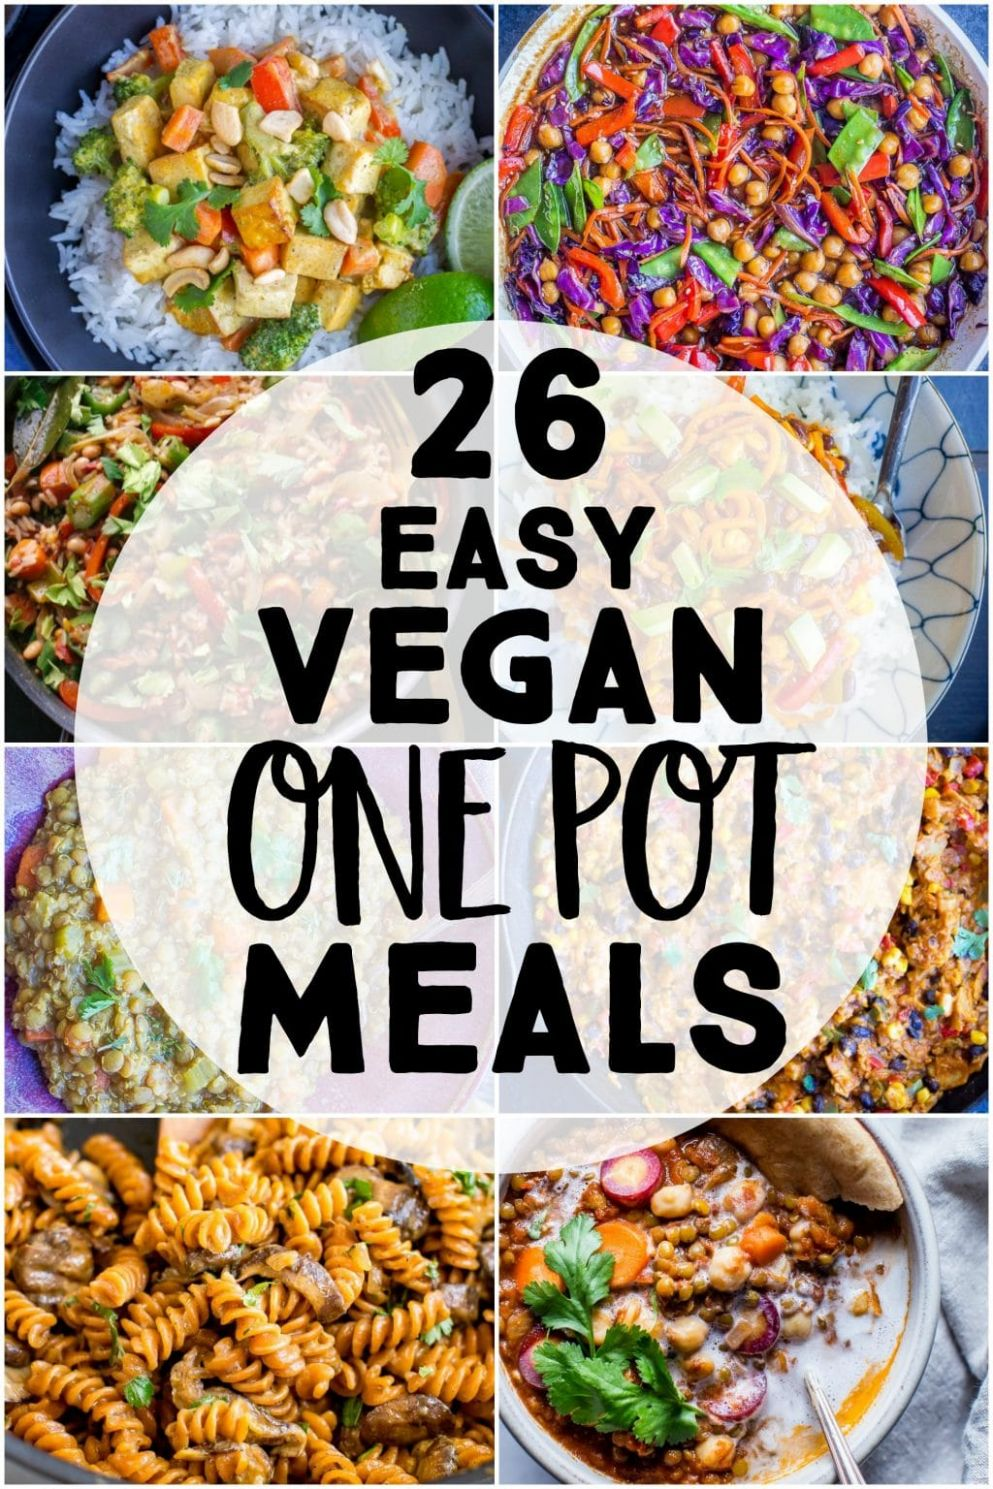 12 Easy Vegan One Pot Meals - She Likes Food - Easy Recipes One Pot